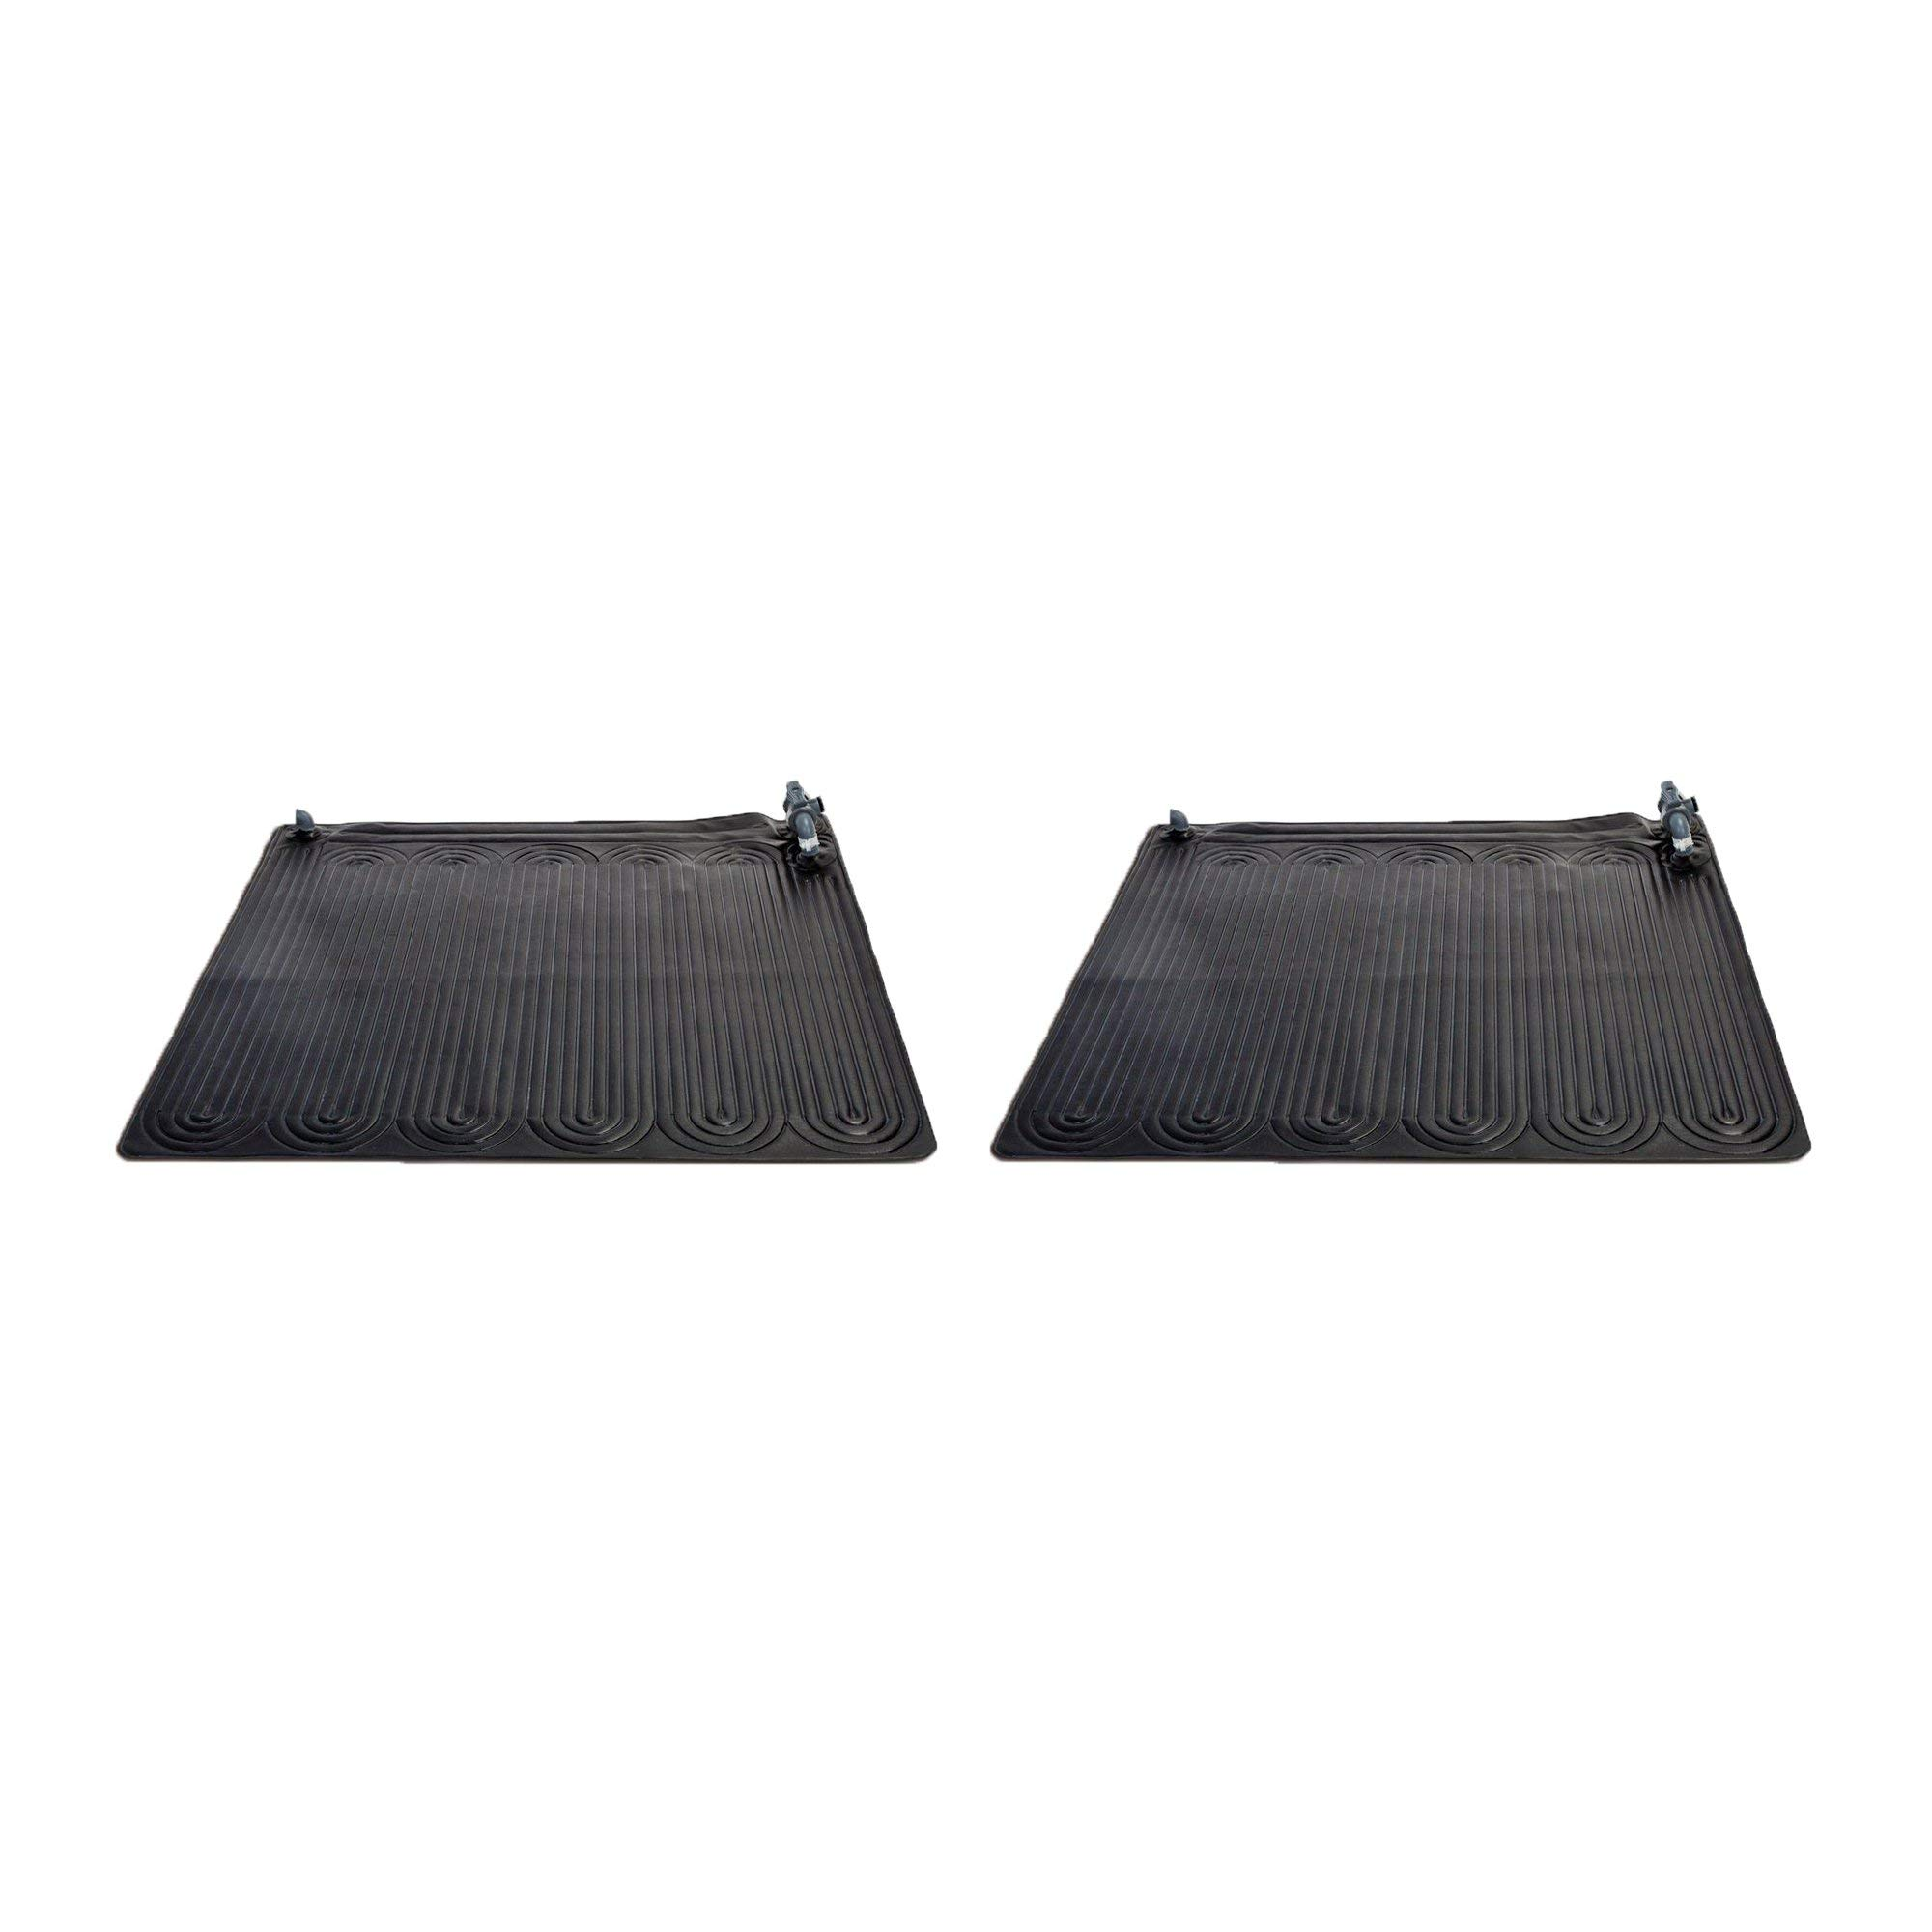 Intex 28685E Above Ground Swimming Pool Water Heater Solar Mat, Black (2 Pack) by Intex